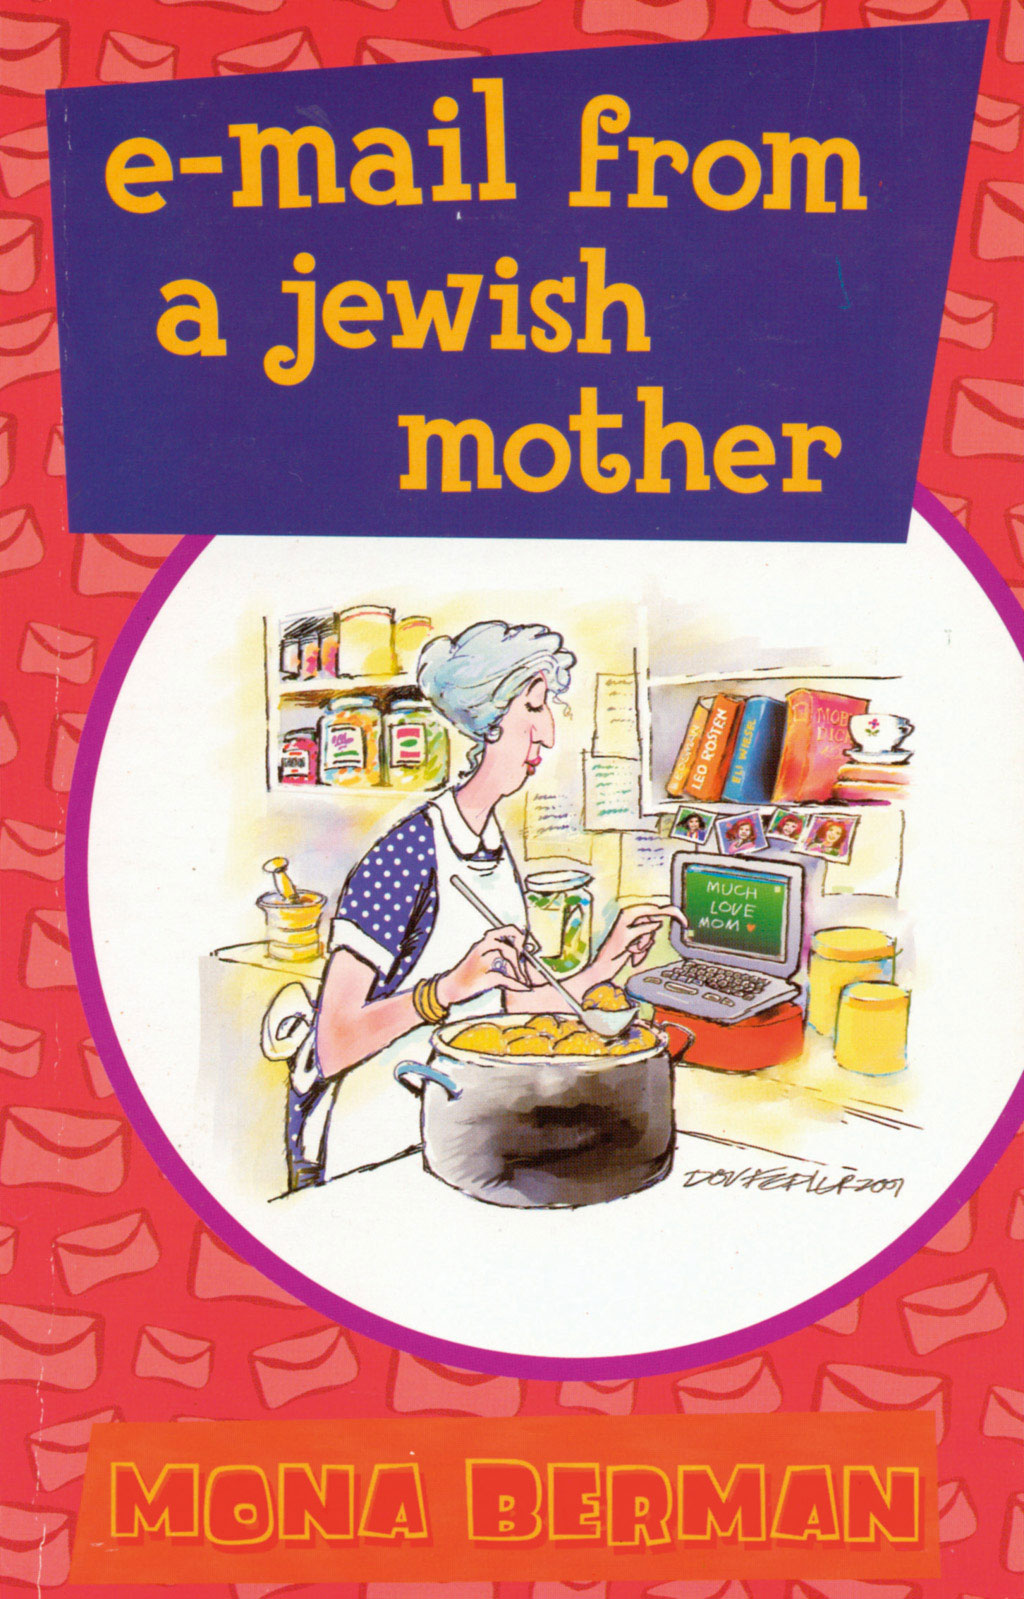 E-MAIL FROM A JEWISH MOTHER